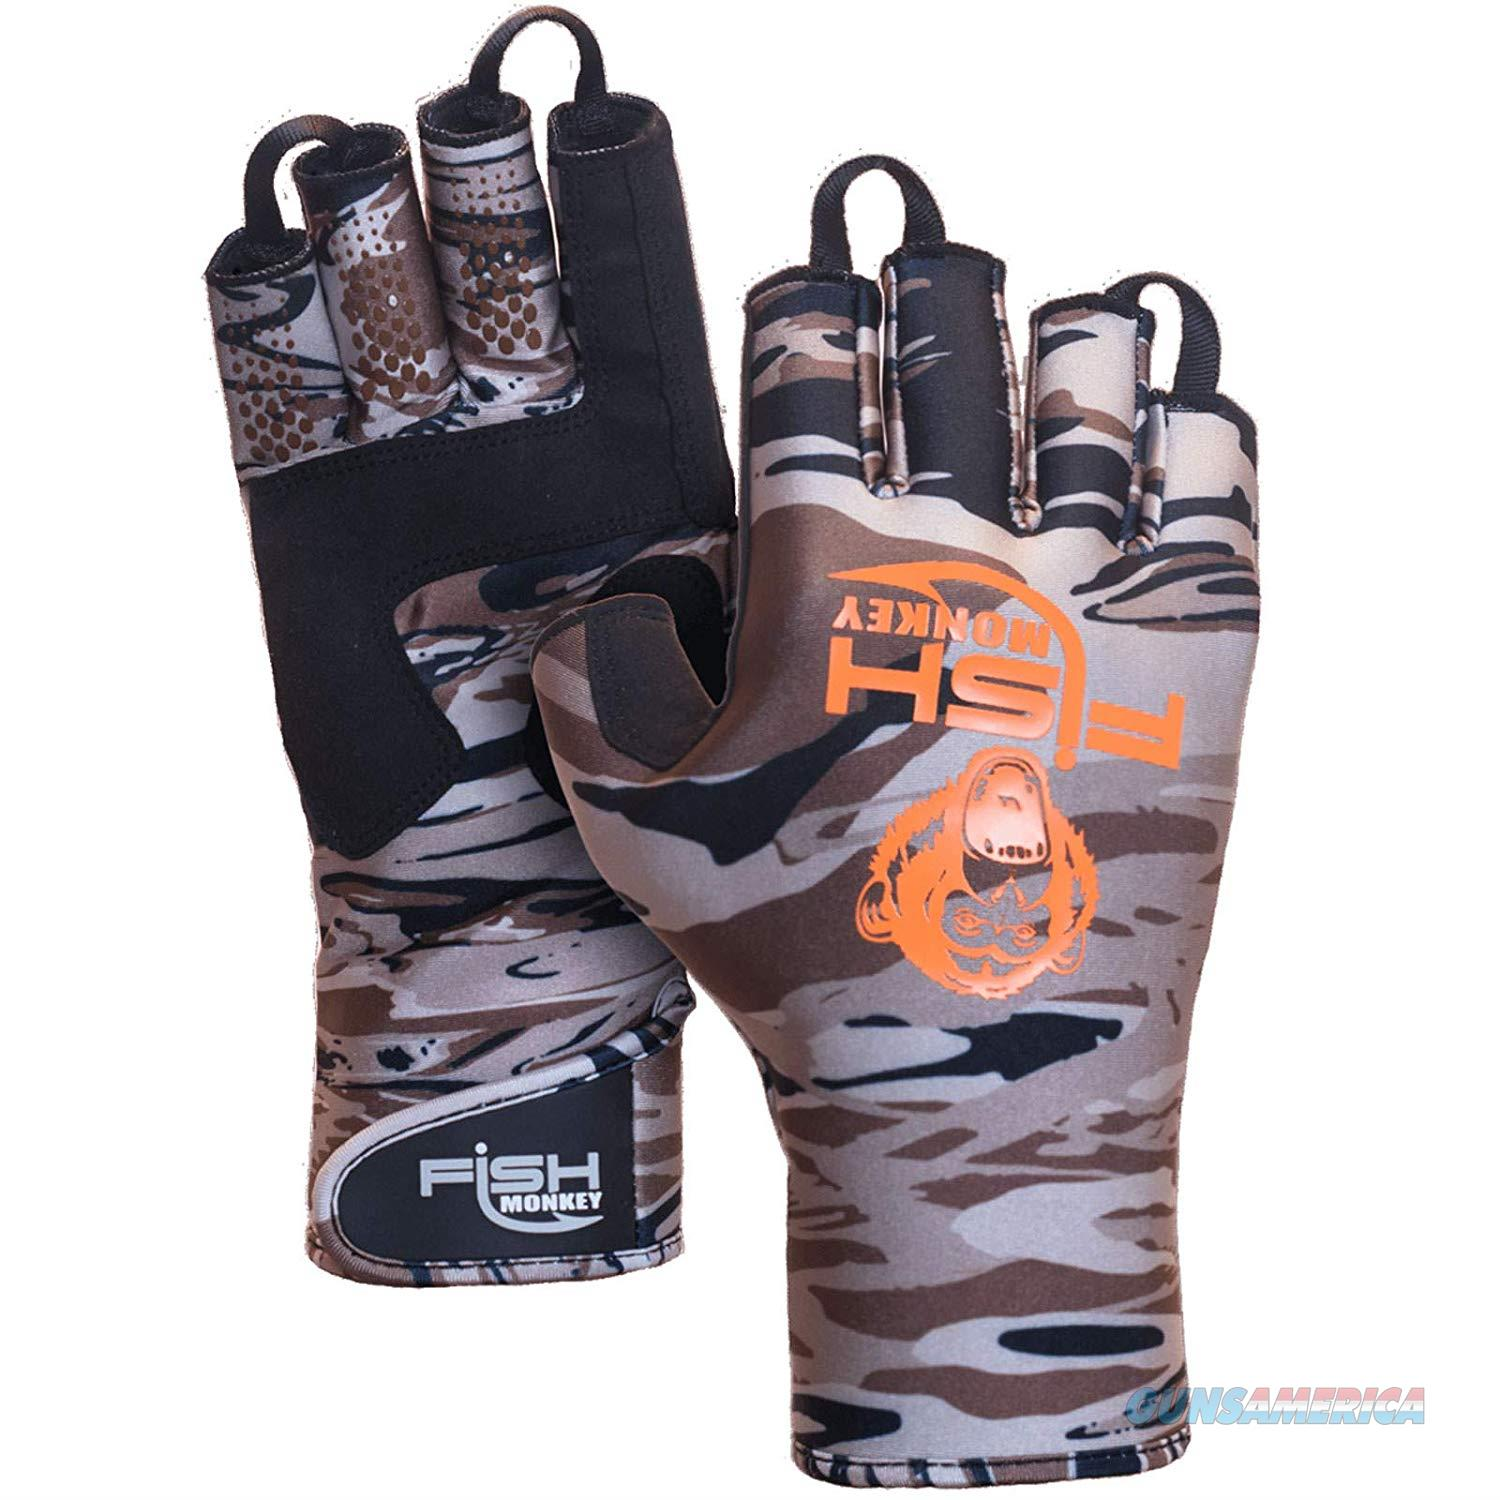 Fish Monkey Backcountry II Glove XL  Non-Guns > Hunting Clothing and Equipment > Clothing > Gloves